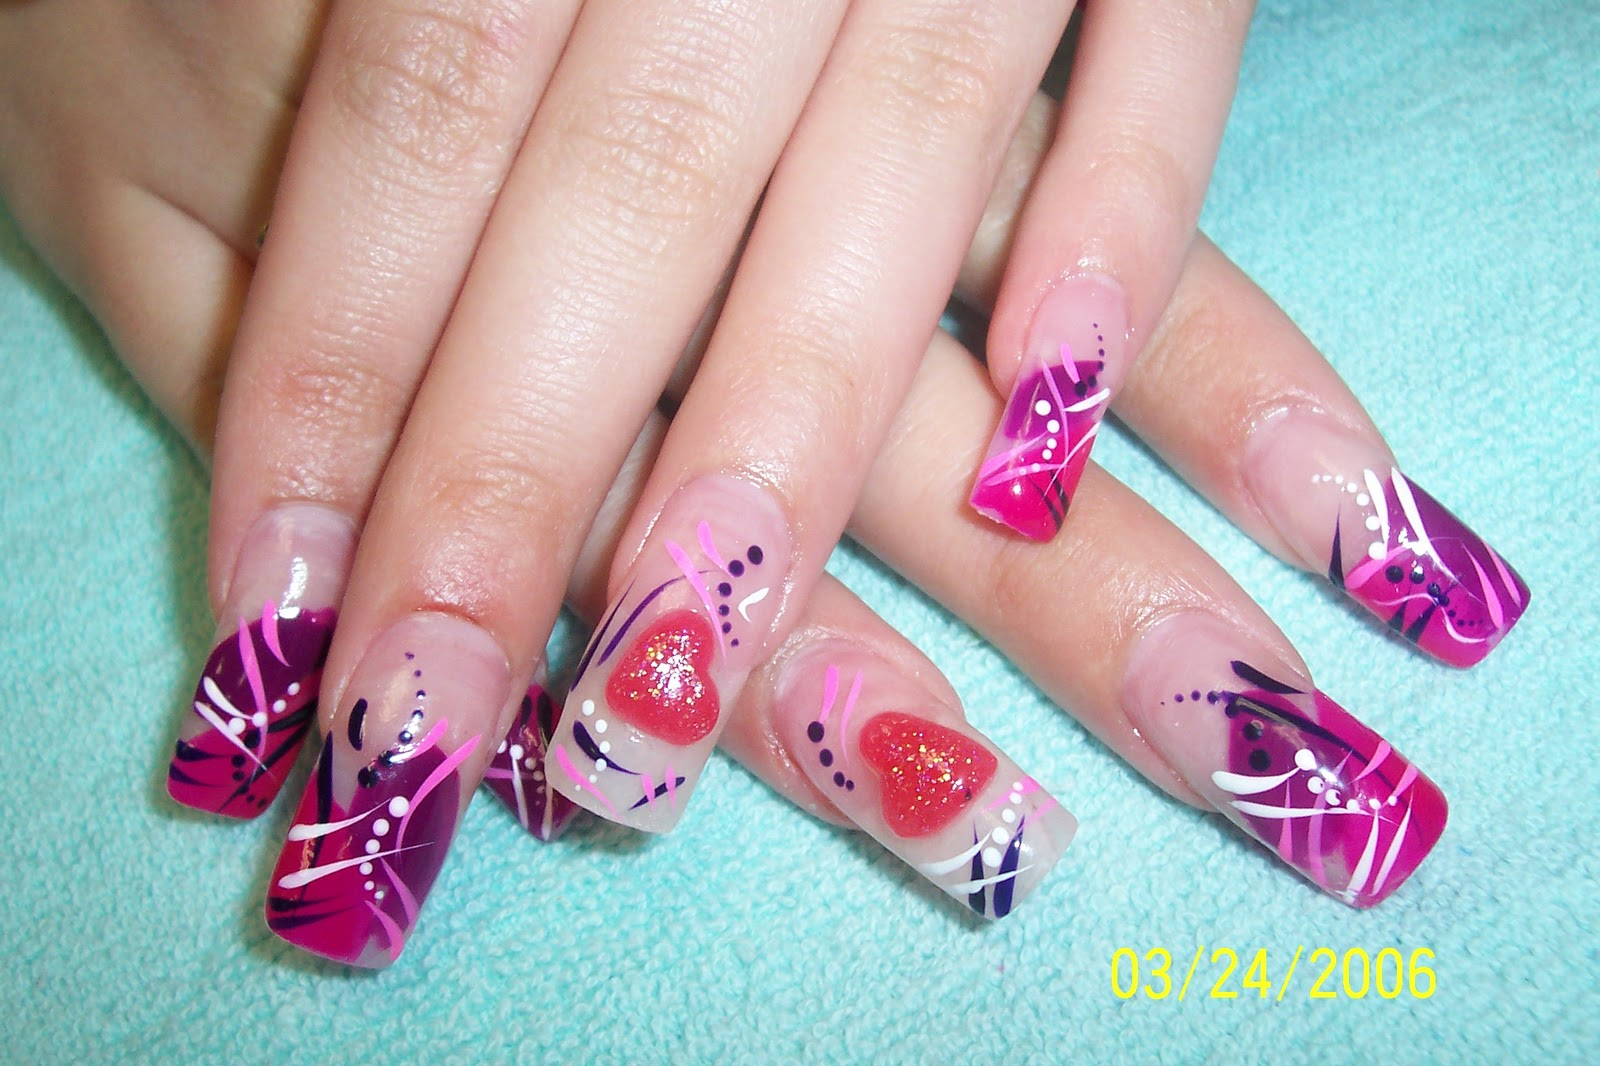 cute acrylic nail designs - photo #3